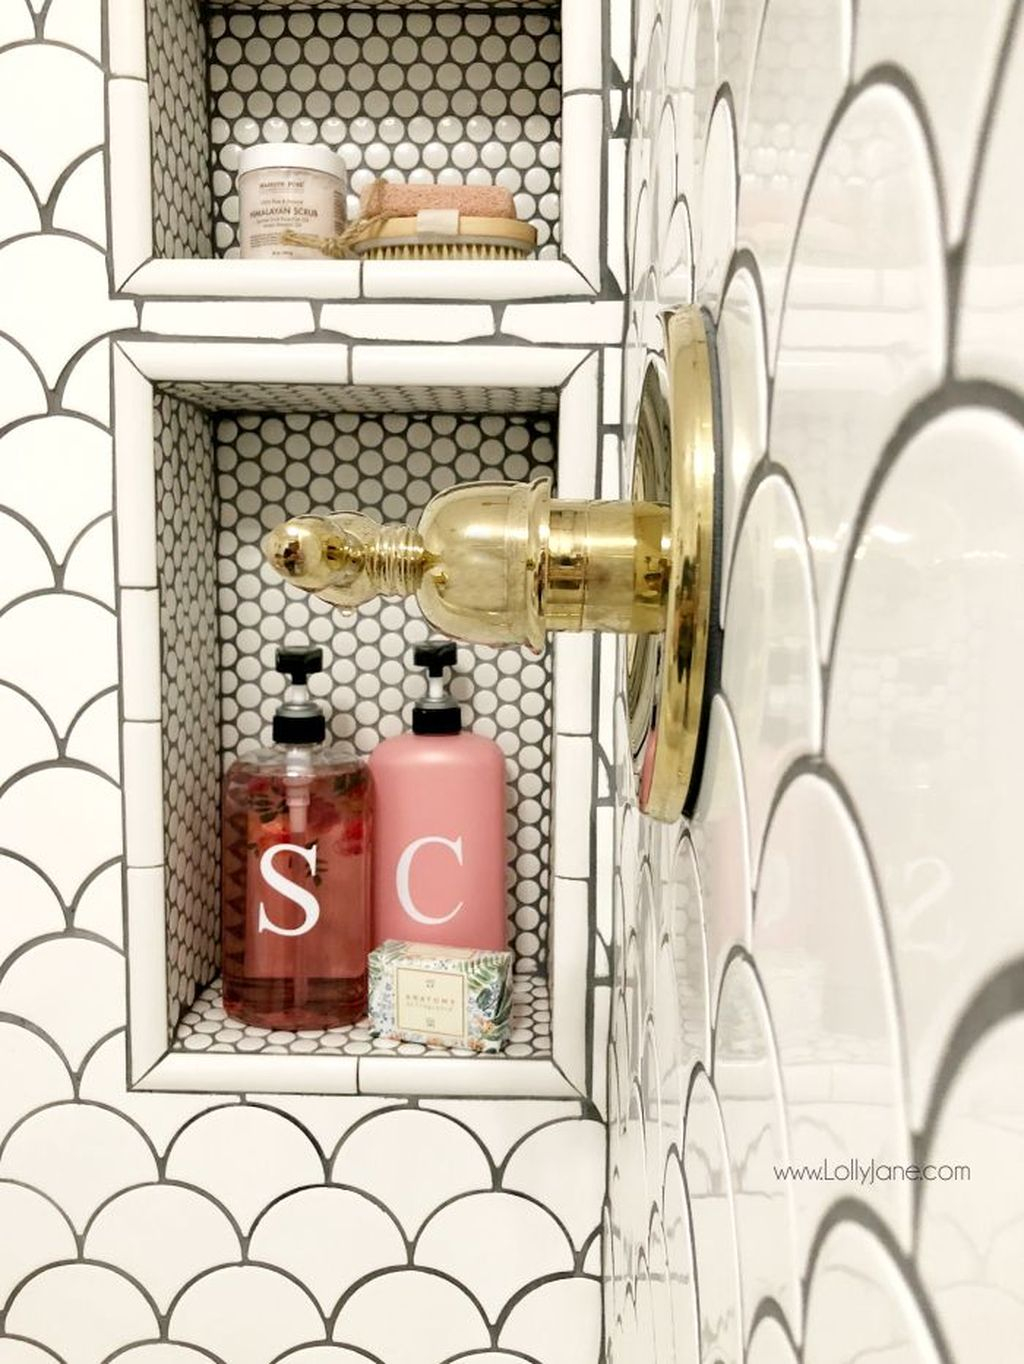 Cute Remodel Shower Design Ideas To Rock This Season 01